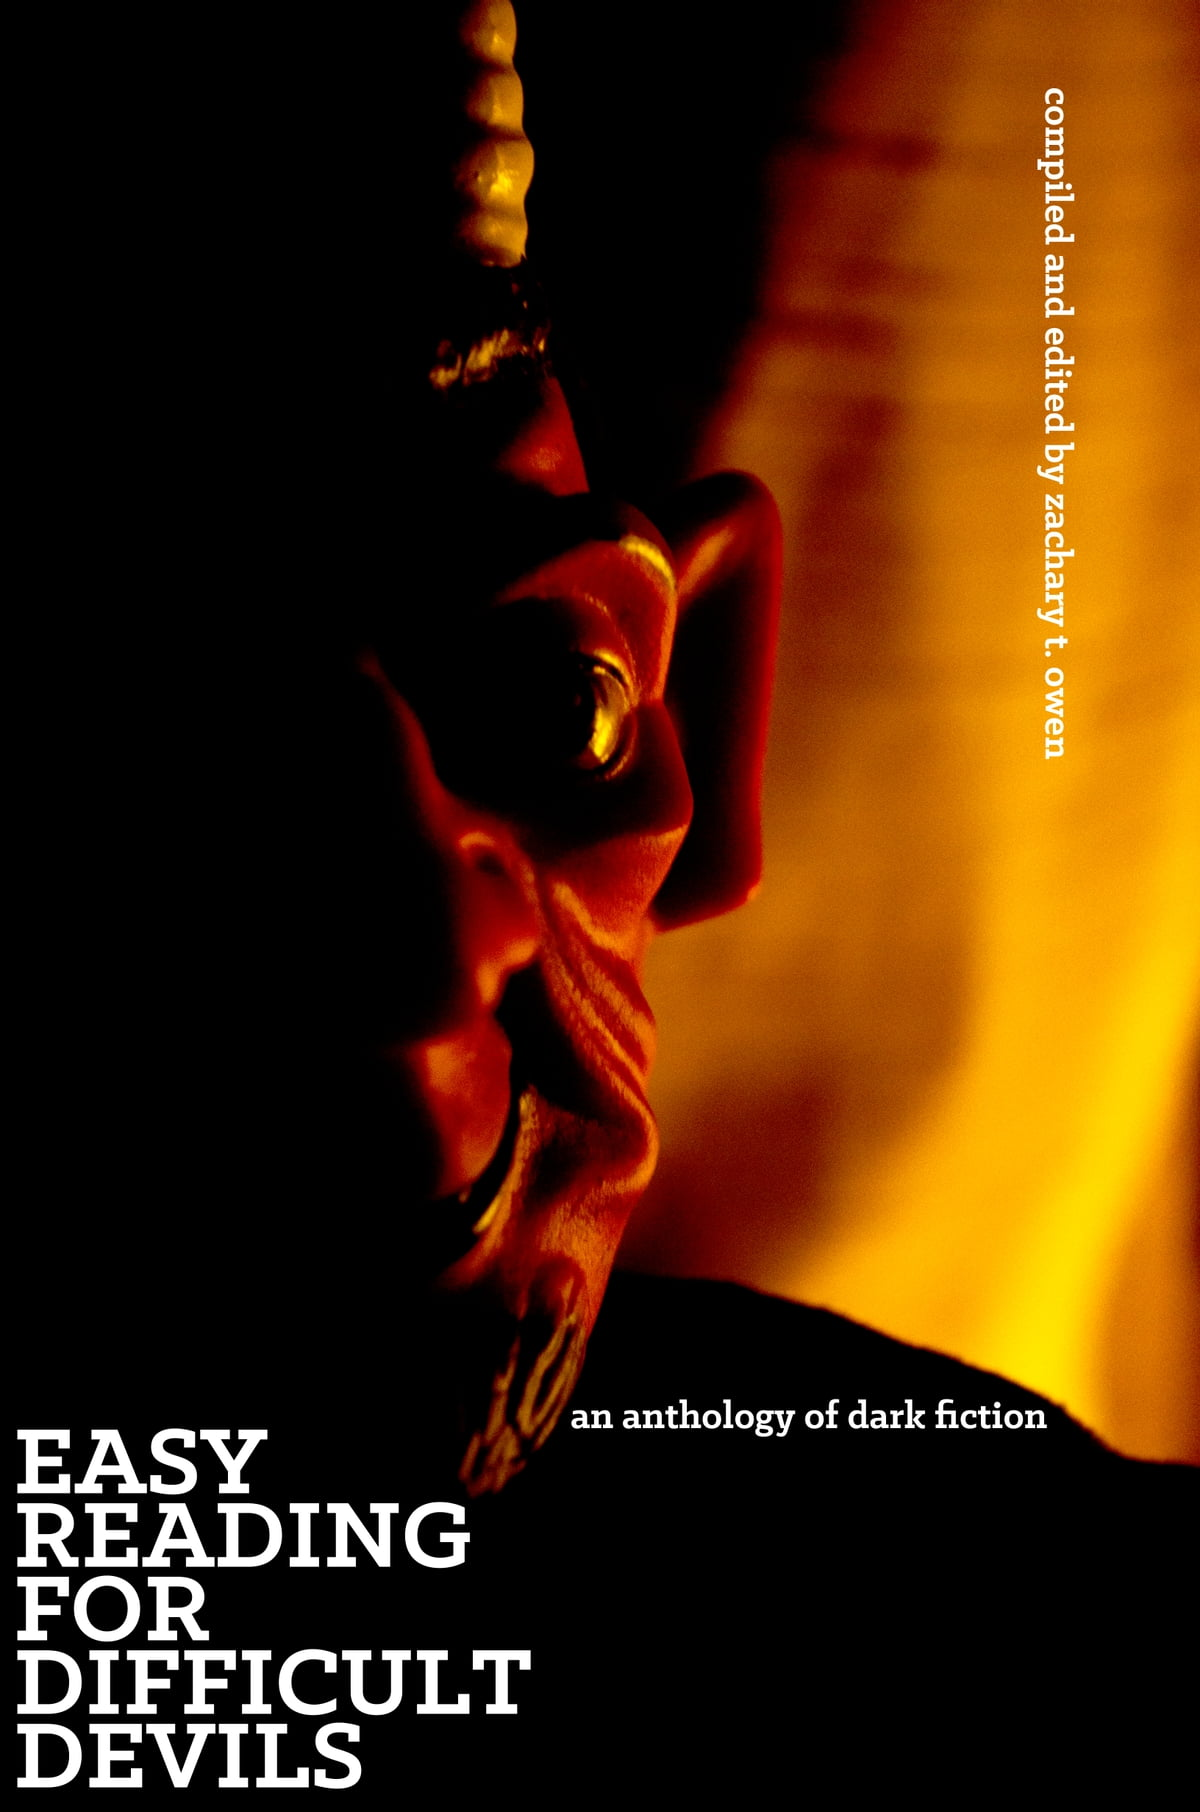 Easy reading for difficult devils ebook by zachary owen easy reading for difficult devils ebook by zachary owen 9781310297564 rakuten kobo fandeluxe Ebook collections